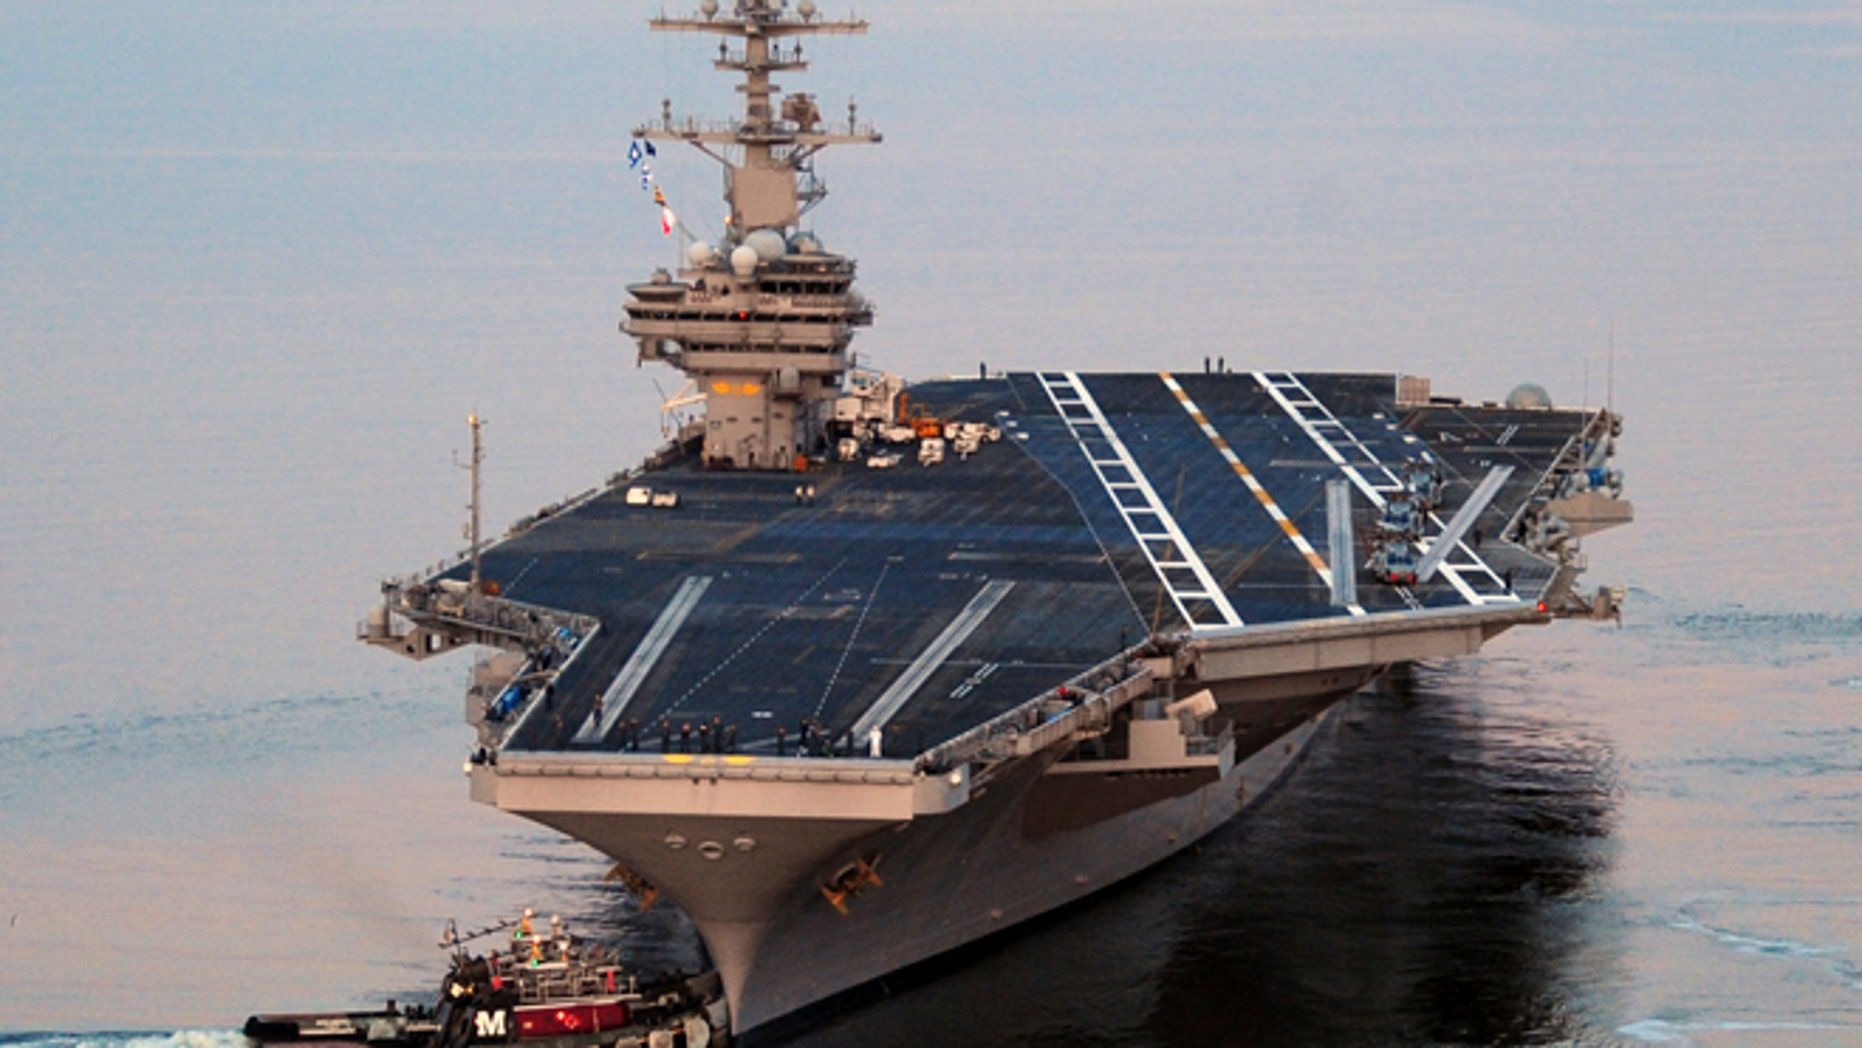 Secretary of Defense Chuck Hagel ordered the carrier to be moved Saturday from the North Arabian Sea to the Arabian Gulf and are expected to arrive sometime this evening.